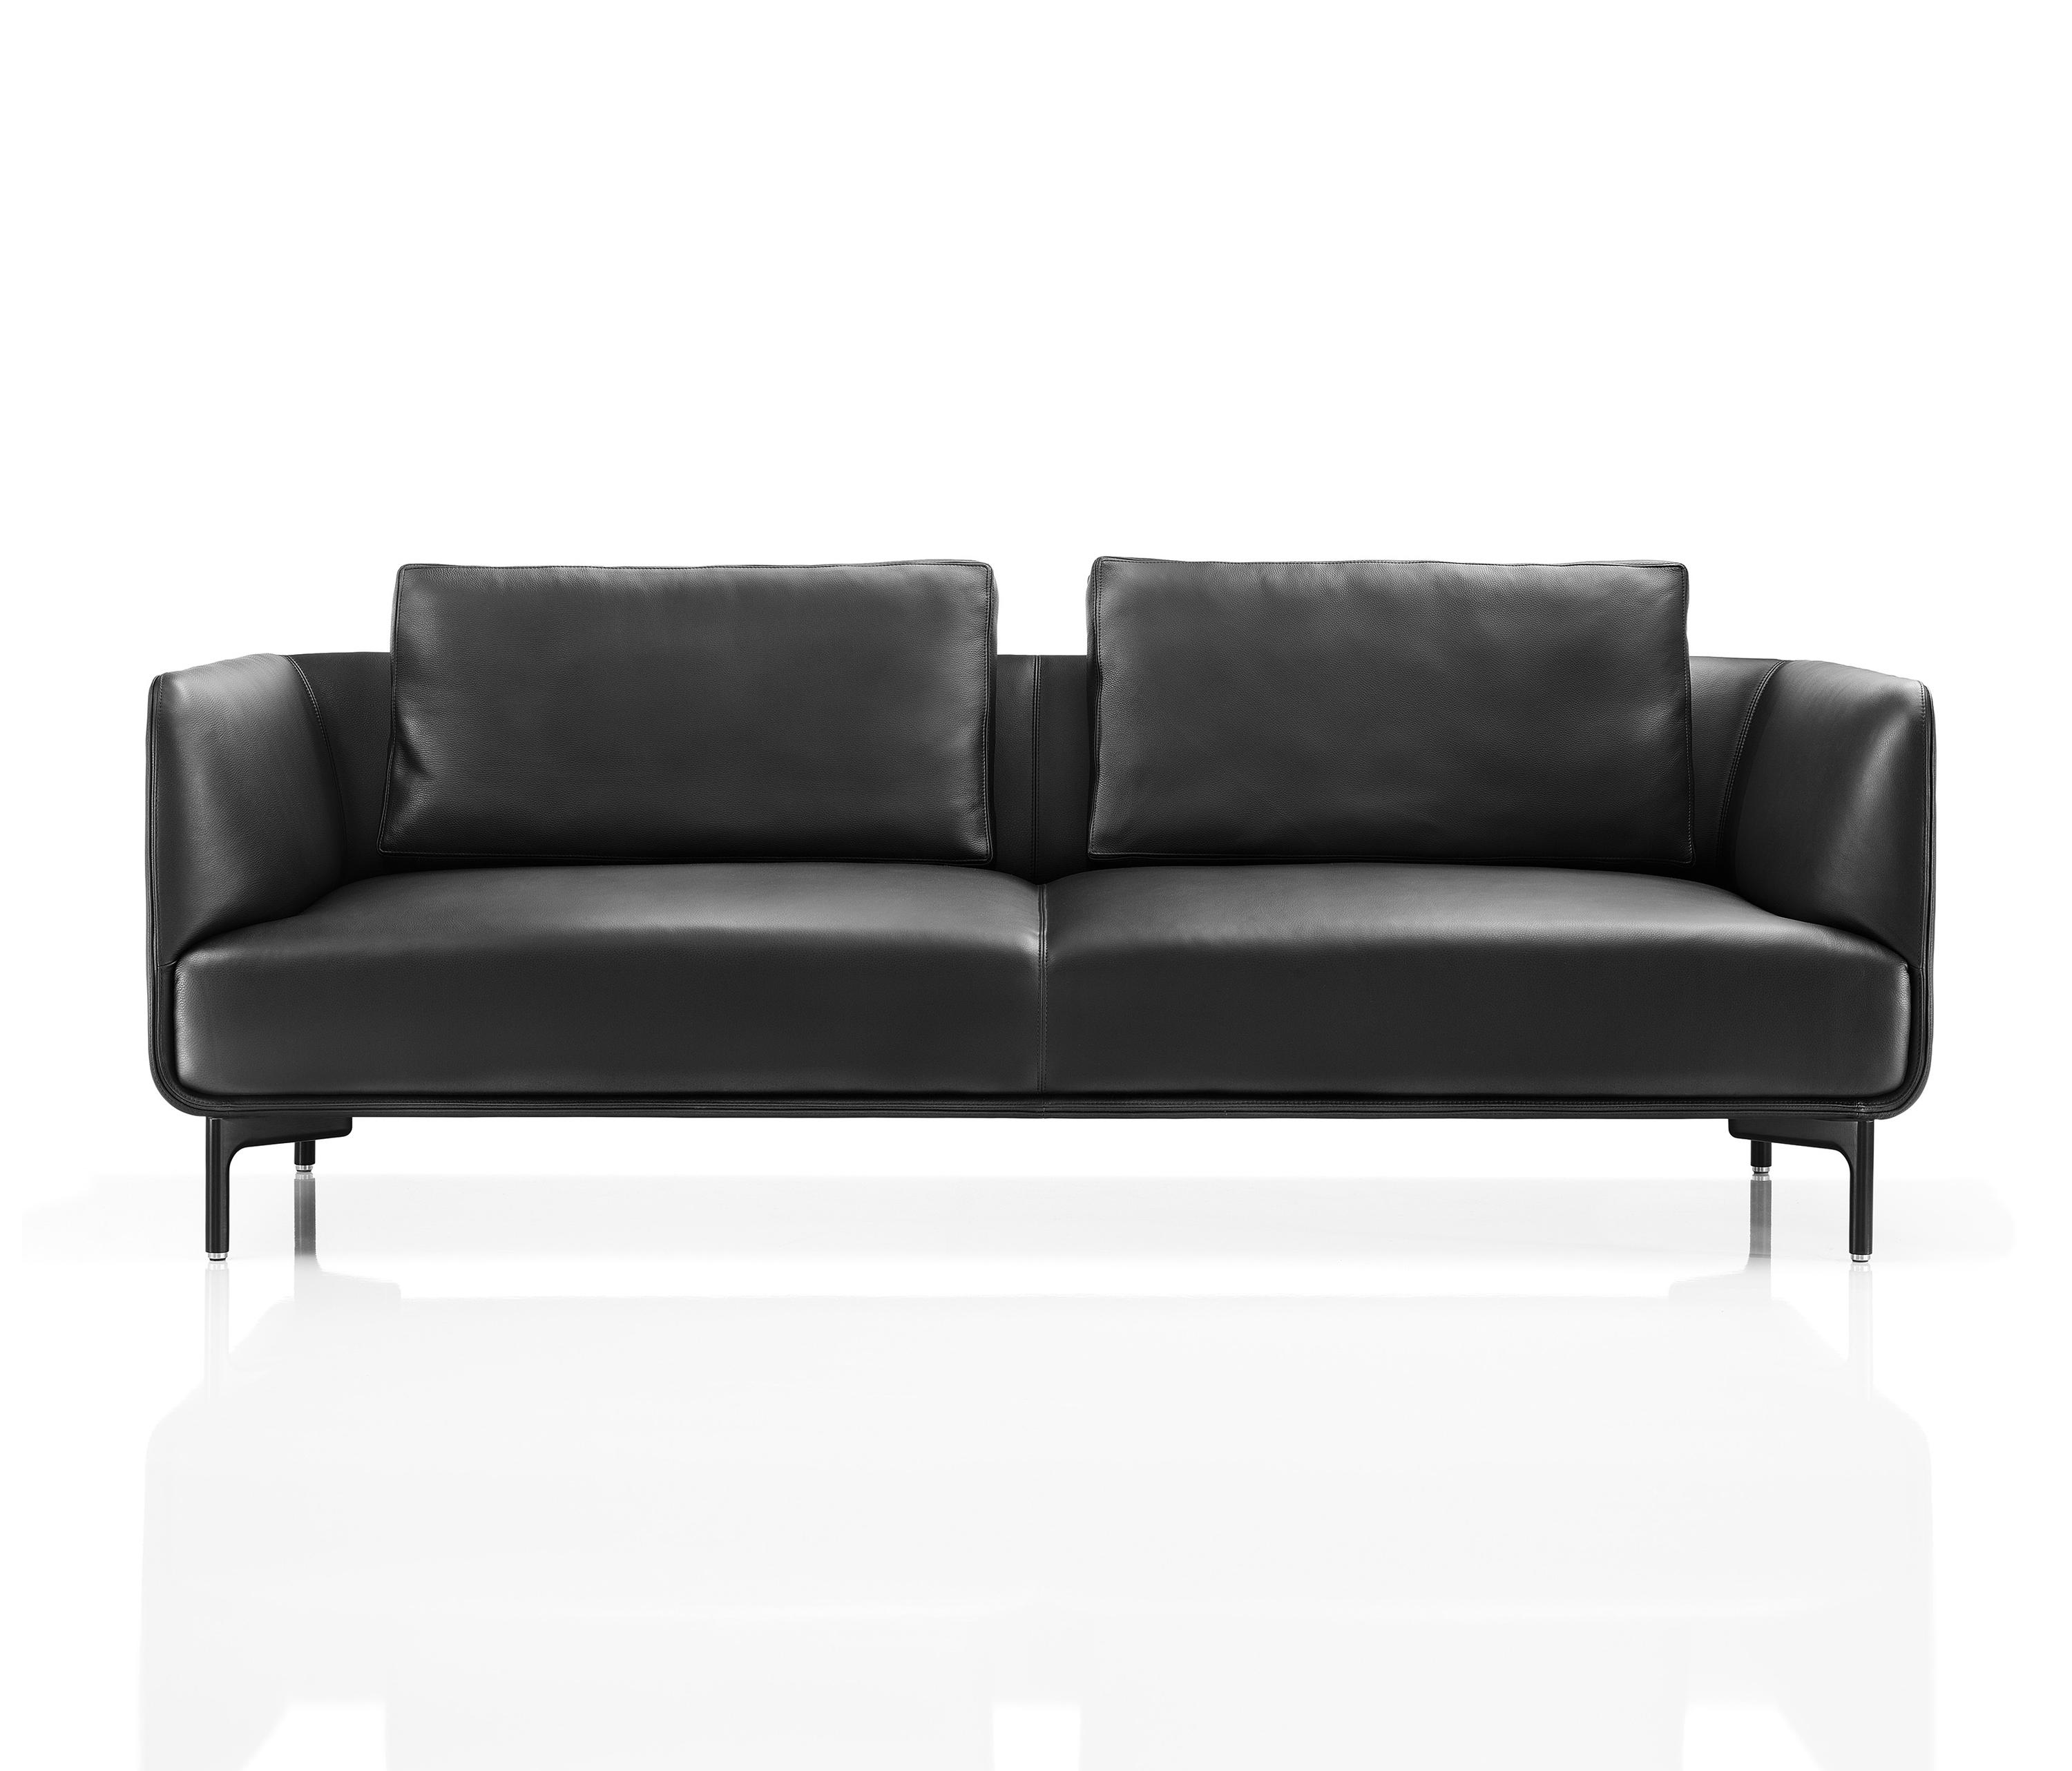 liv sofa 215 lounge sofas from wittmann architonic. Black Bedroom Furniture Sets. Home Design Ideas